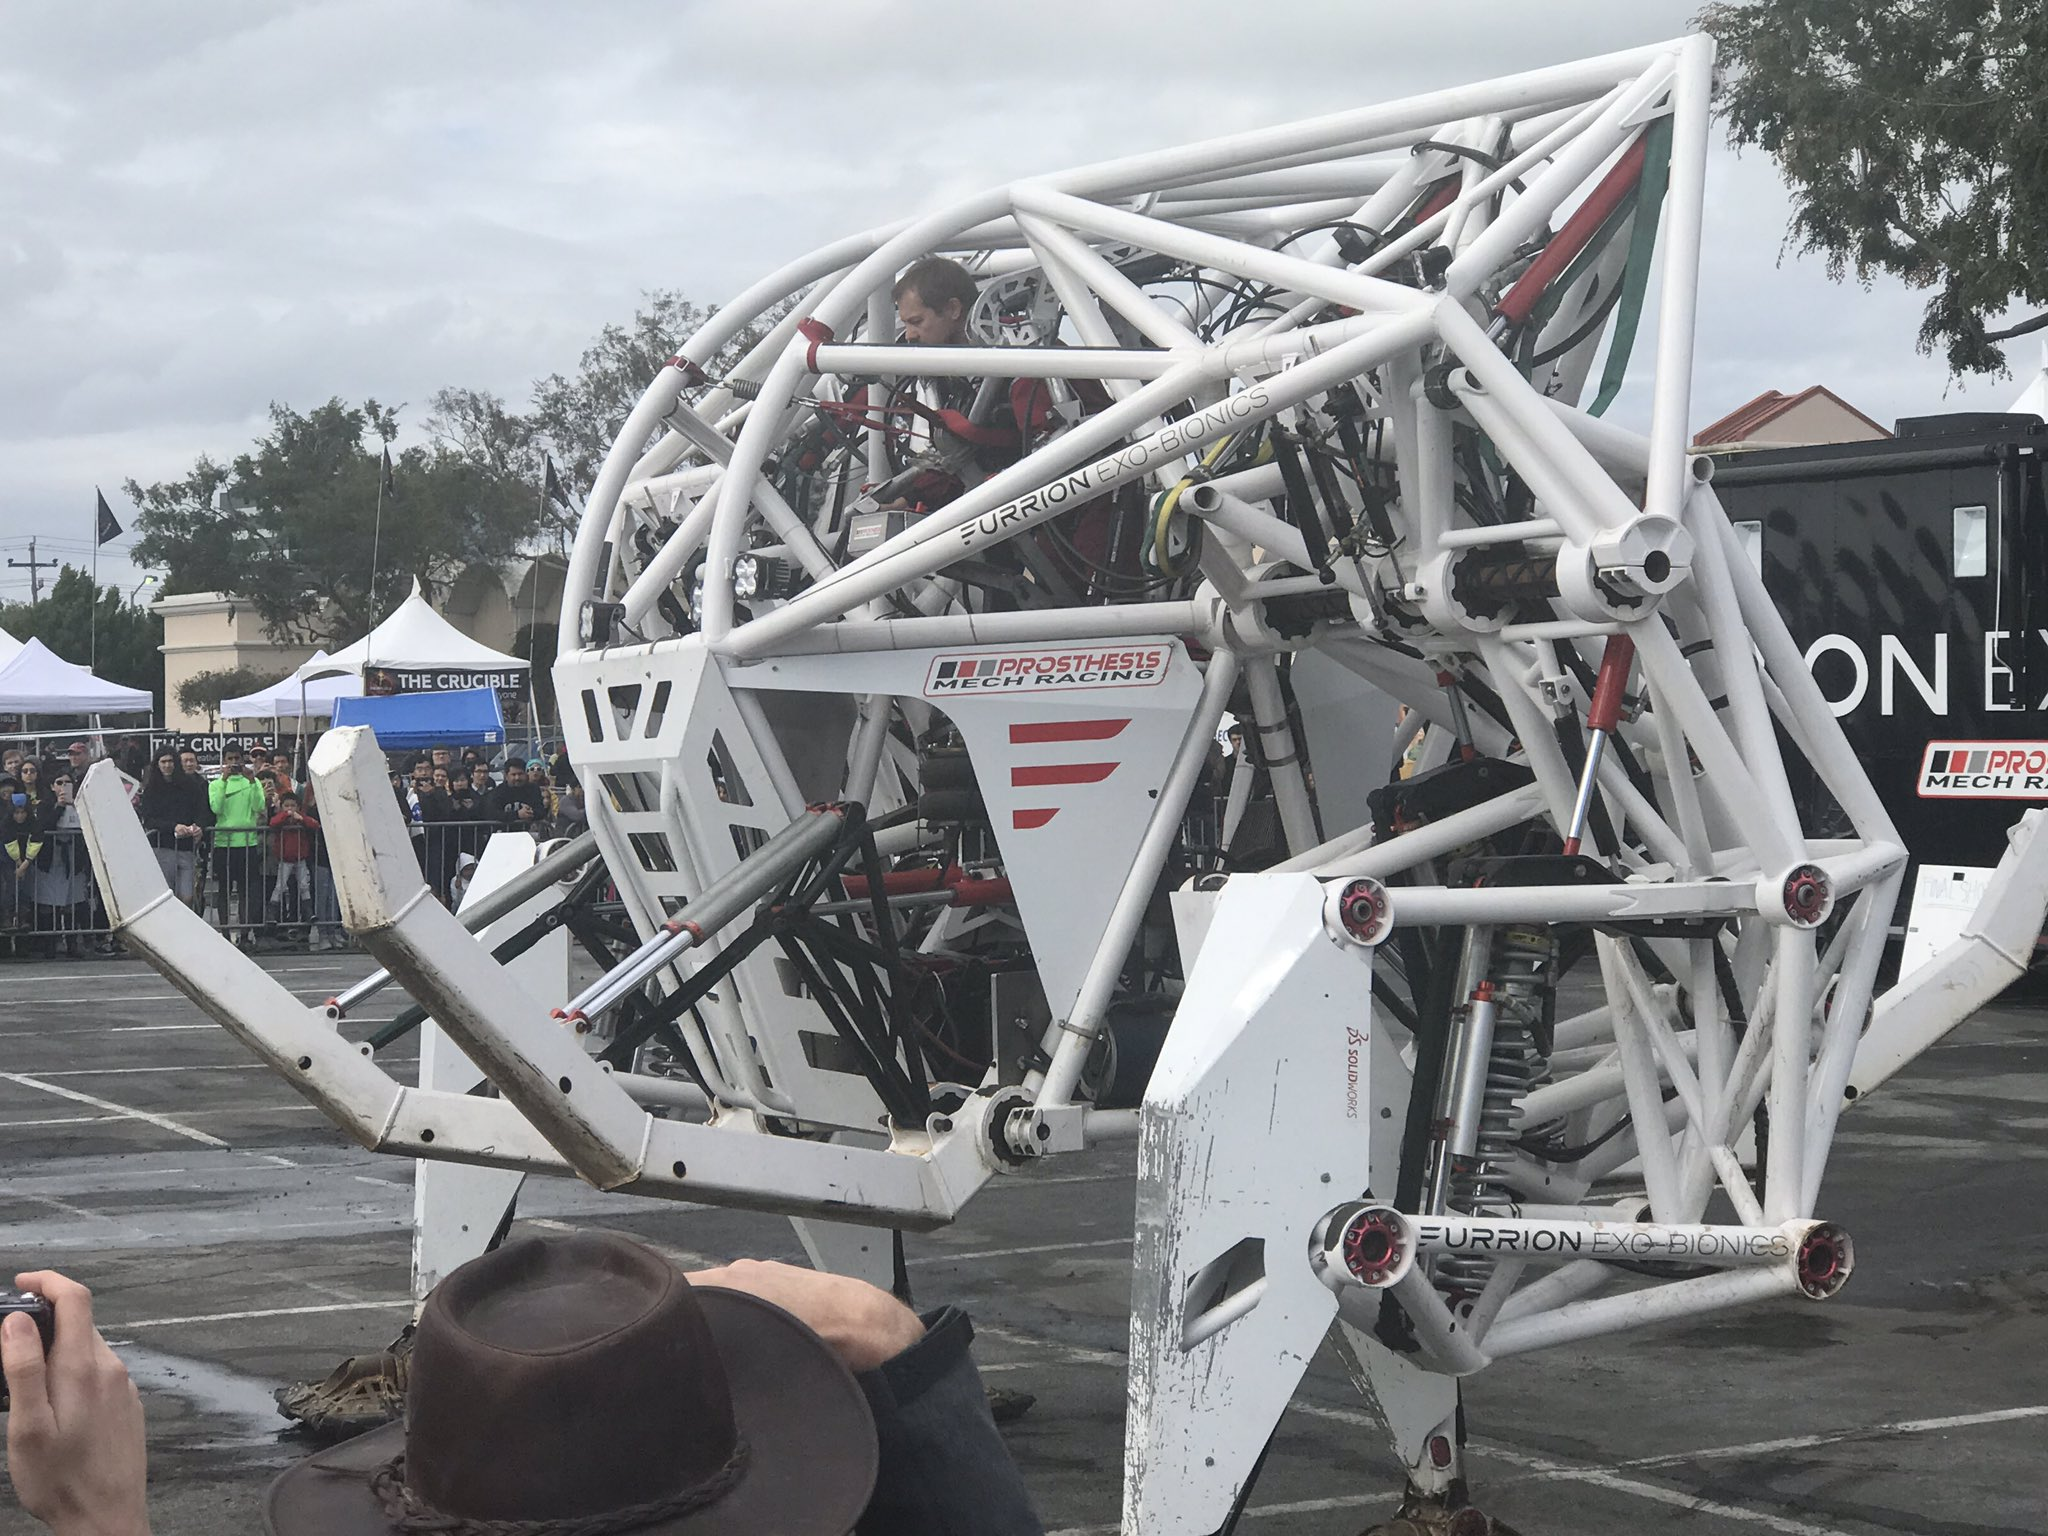 A gigantic mecha called Prosthesis, one of the highlights of this year's Maker Faire Bay Area. Image via Maker Faire/Twitter.